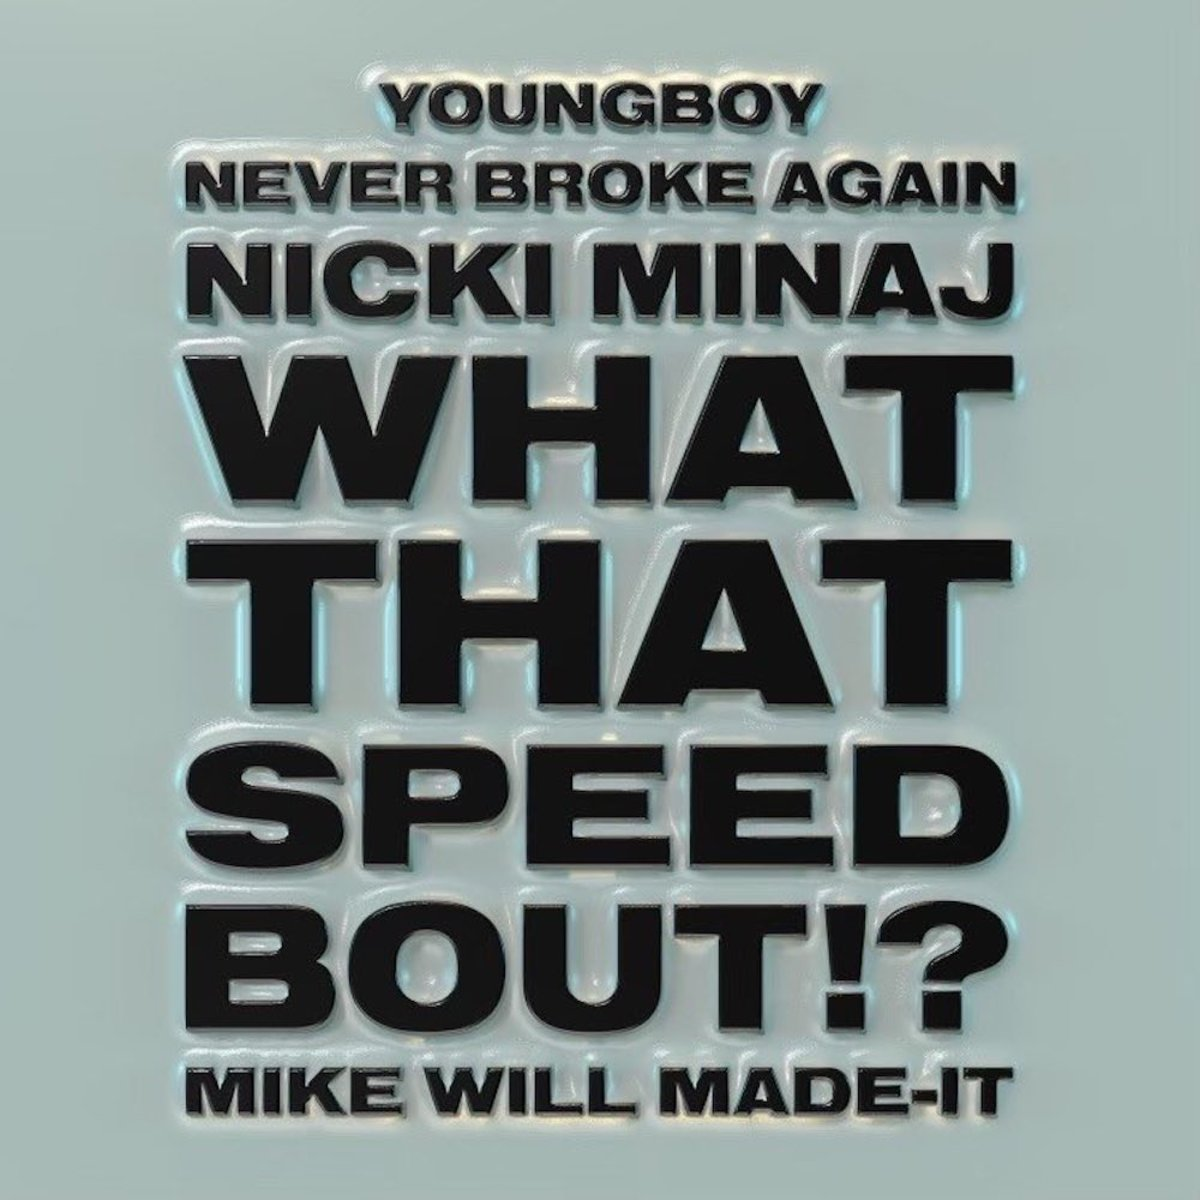 Photo of Mike WiLL Made-It Ft. Nicki Minaj & YoungBoy Never Broke Again – What That Speed Bout?!